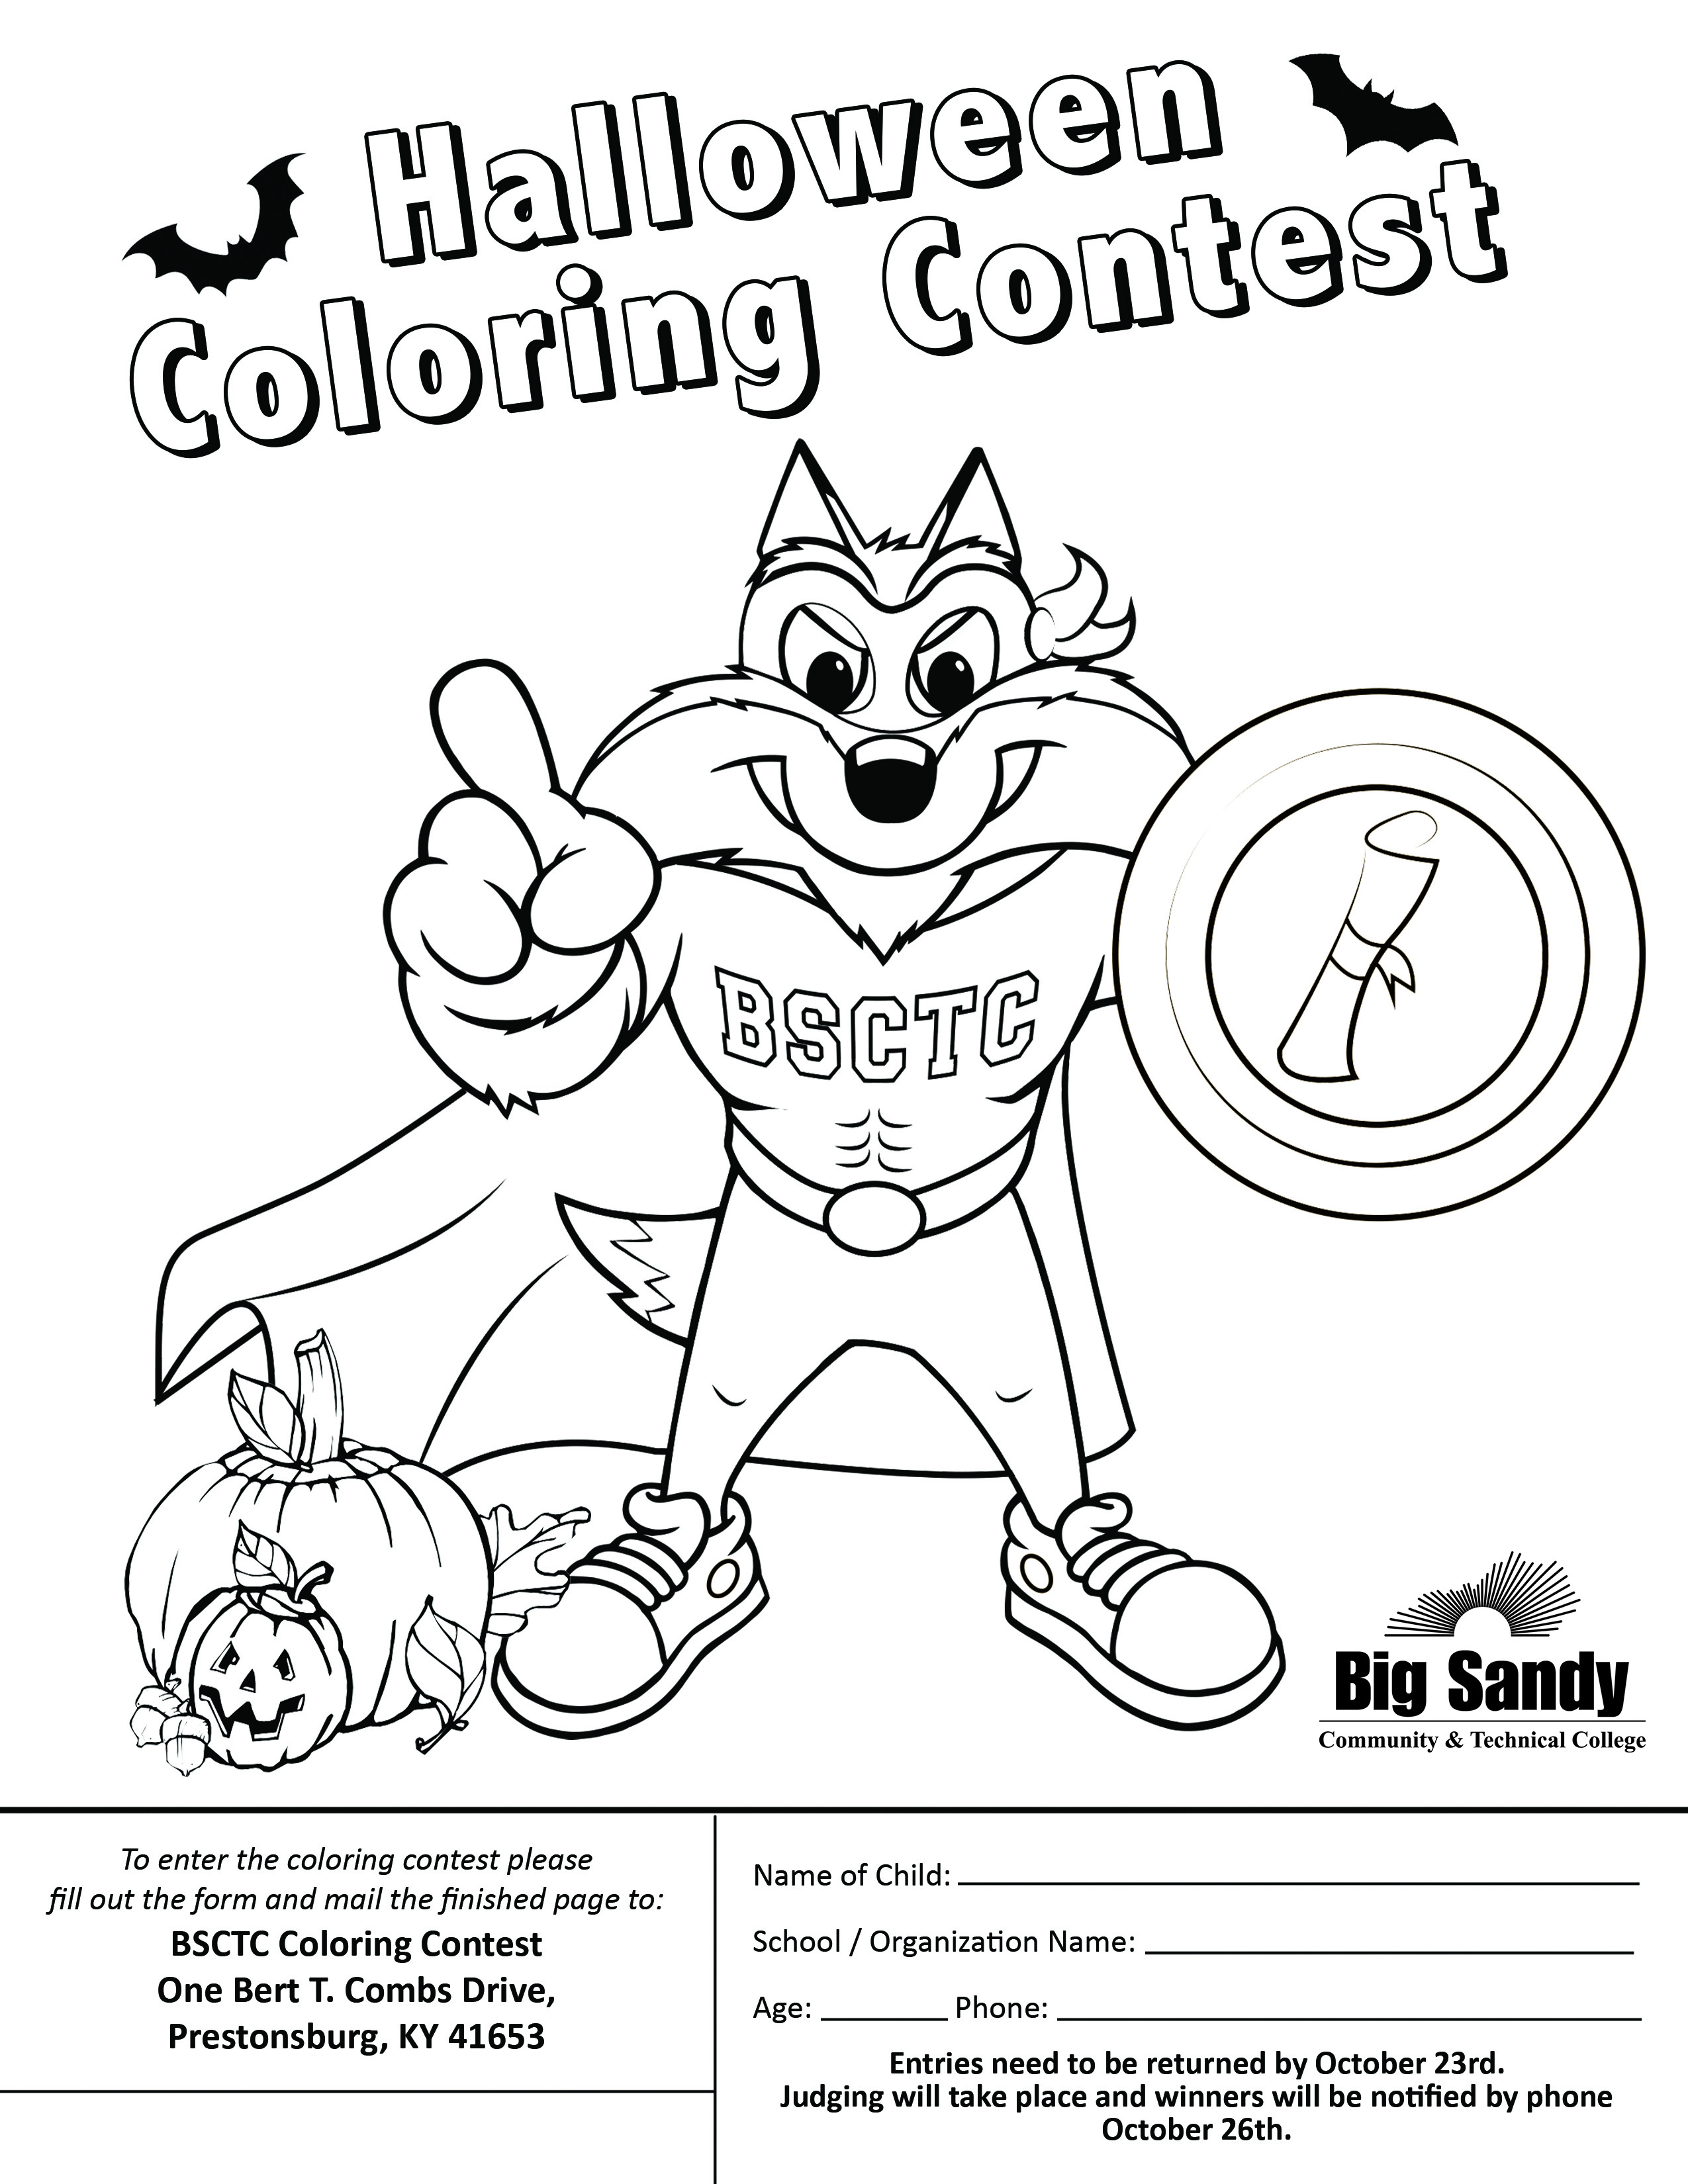 Big Sandy Community and Technical College Hosting Coloring